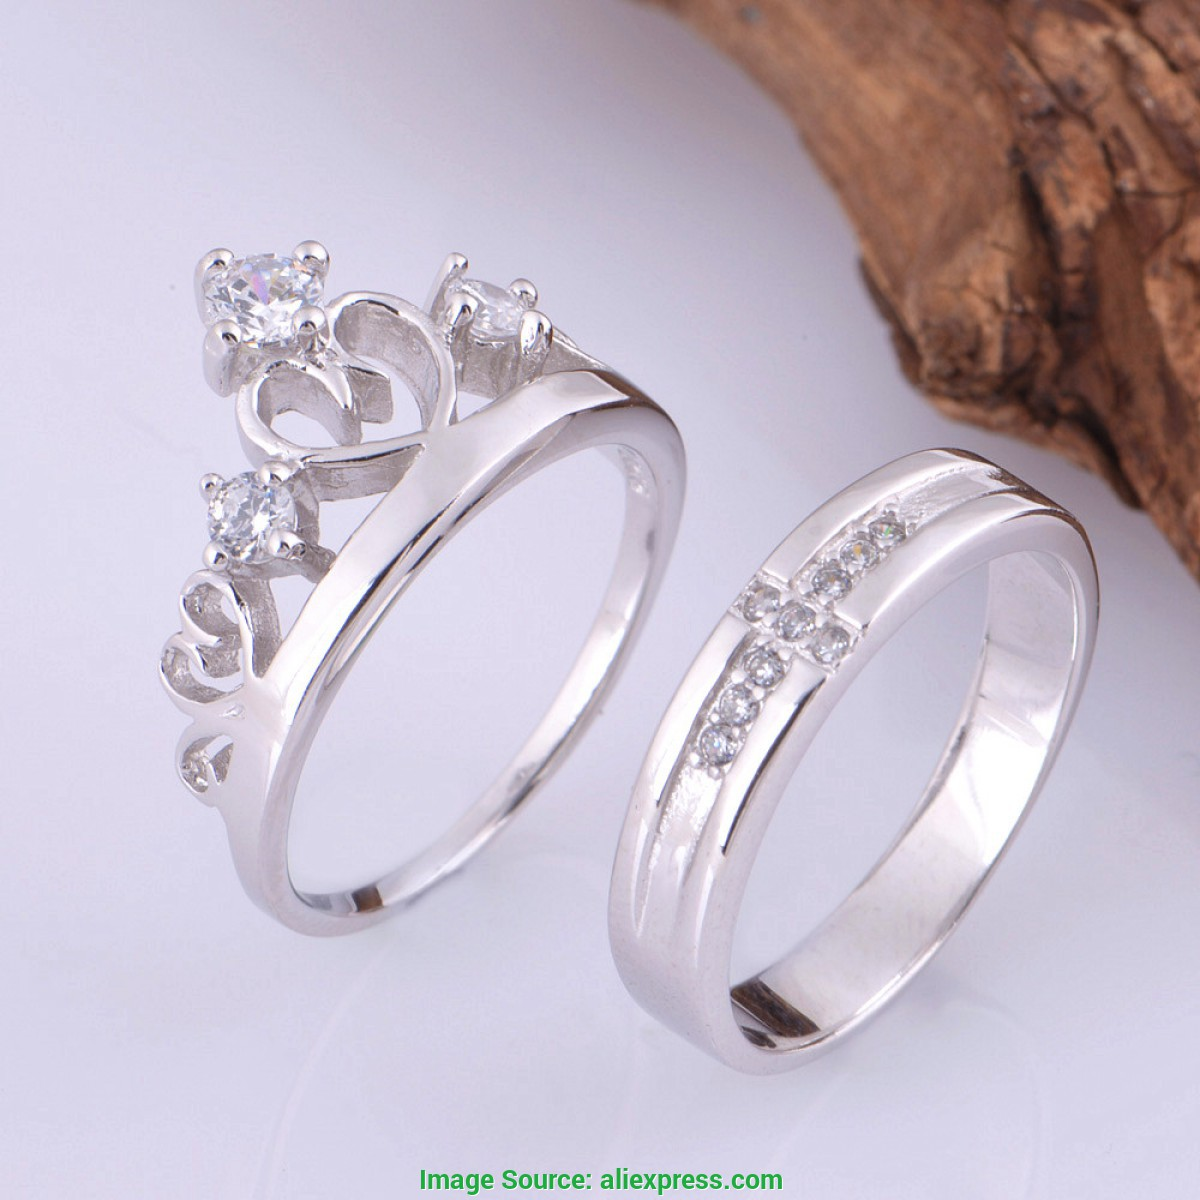 Único Anel de Compromisso 2016 Couple Silver Rings Cz Zircon Lover Crown Ring Wedding Accessorie